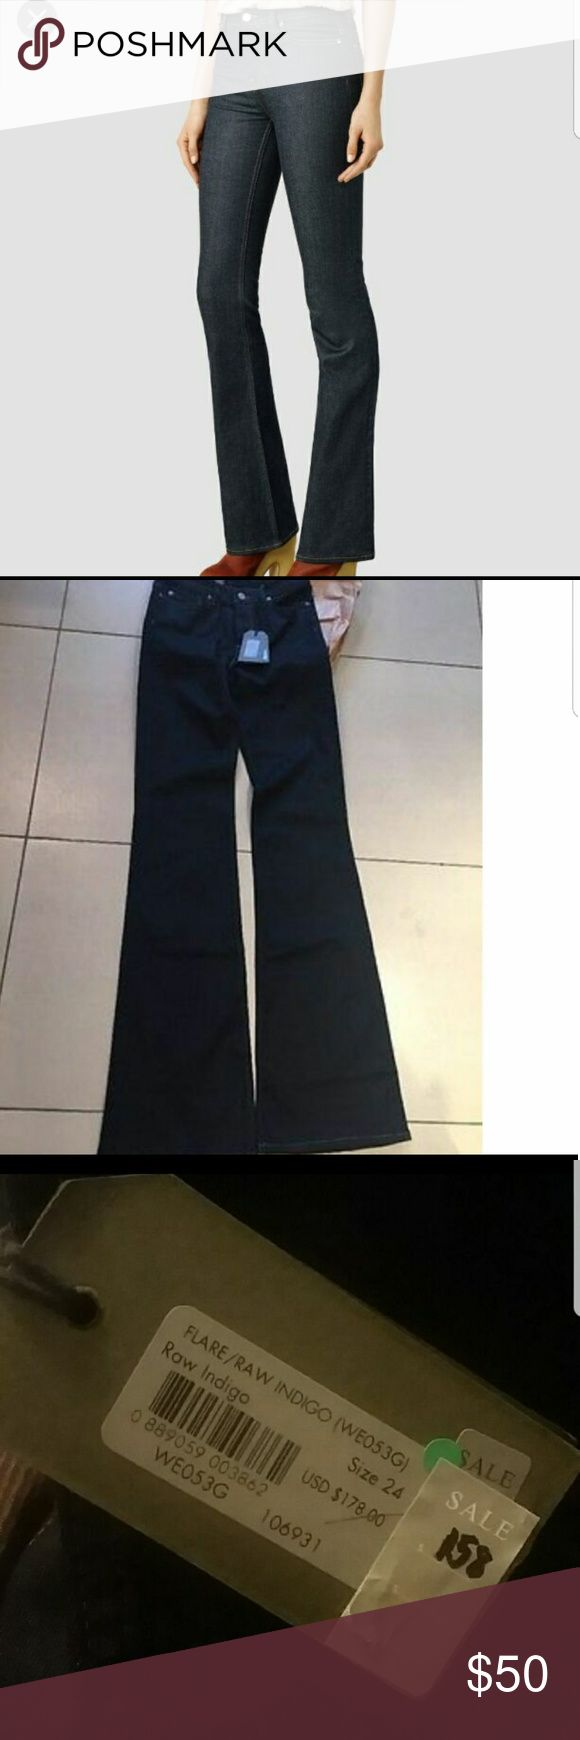 NWT ALLSAINTS flare/bootcut high waisted jeans 24 Beautiful ALLSAINTS jeans in raw indigo. Such a stunning find, get on trend with these! allsaints Pants Boot Cut & Flare